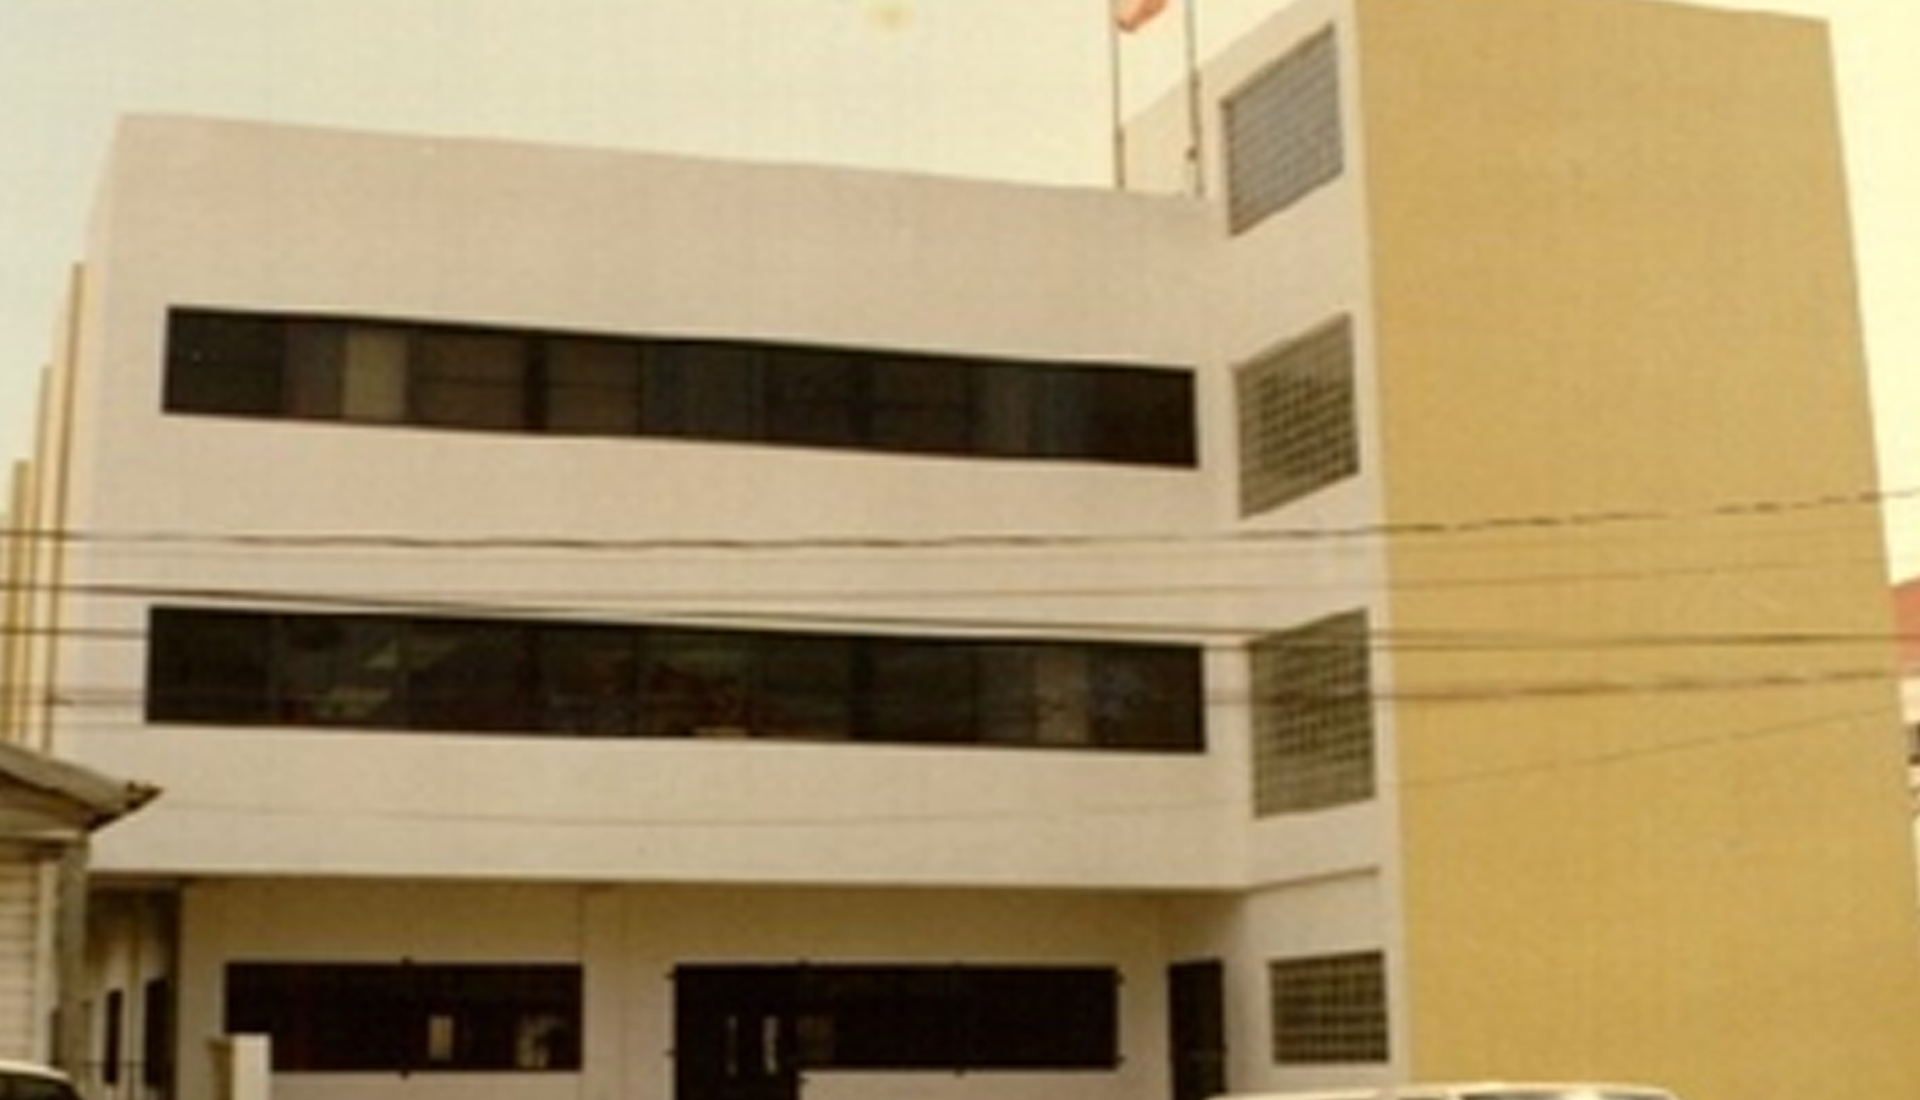 Commercial-Office-Building,-North-Front-Street,-Belize-City